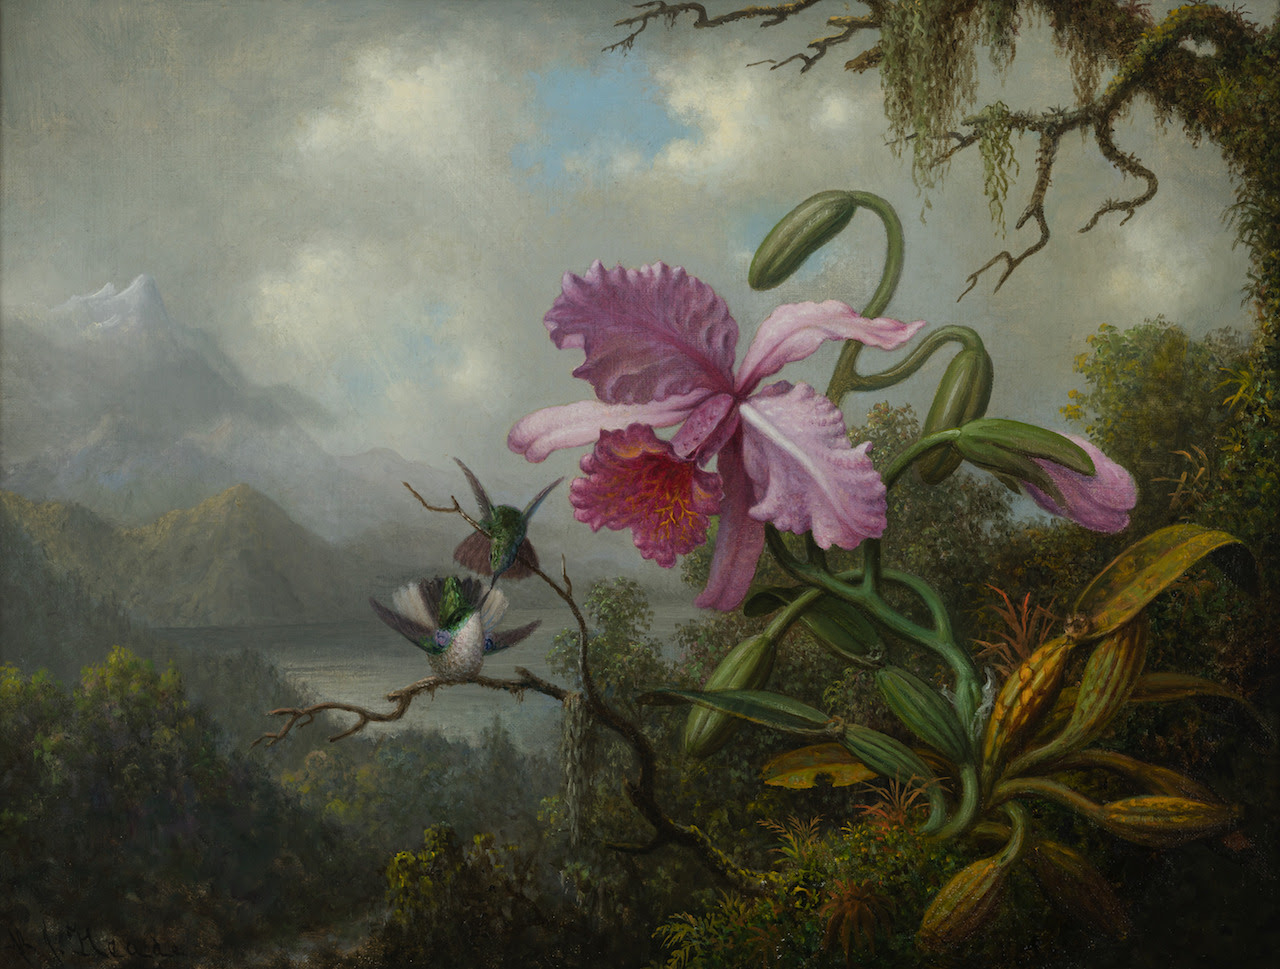 Martin Johnson Heade. Orchid and Hummingbirds near a Mountain Lake, about 1875 – 90. Oil on canvas. Collection of Carolyn A. and Peter S. Lynch.